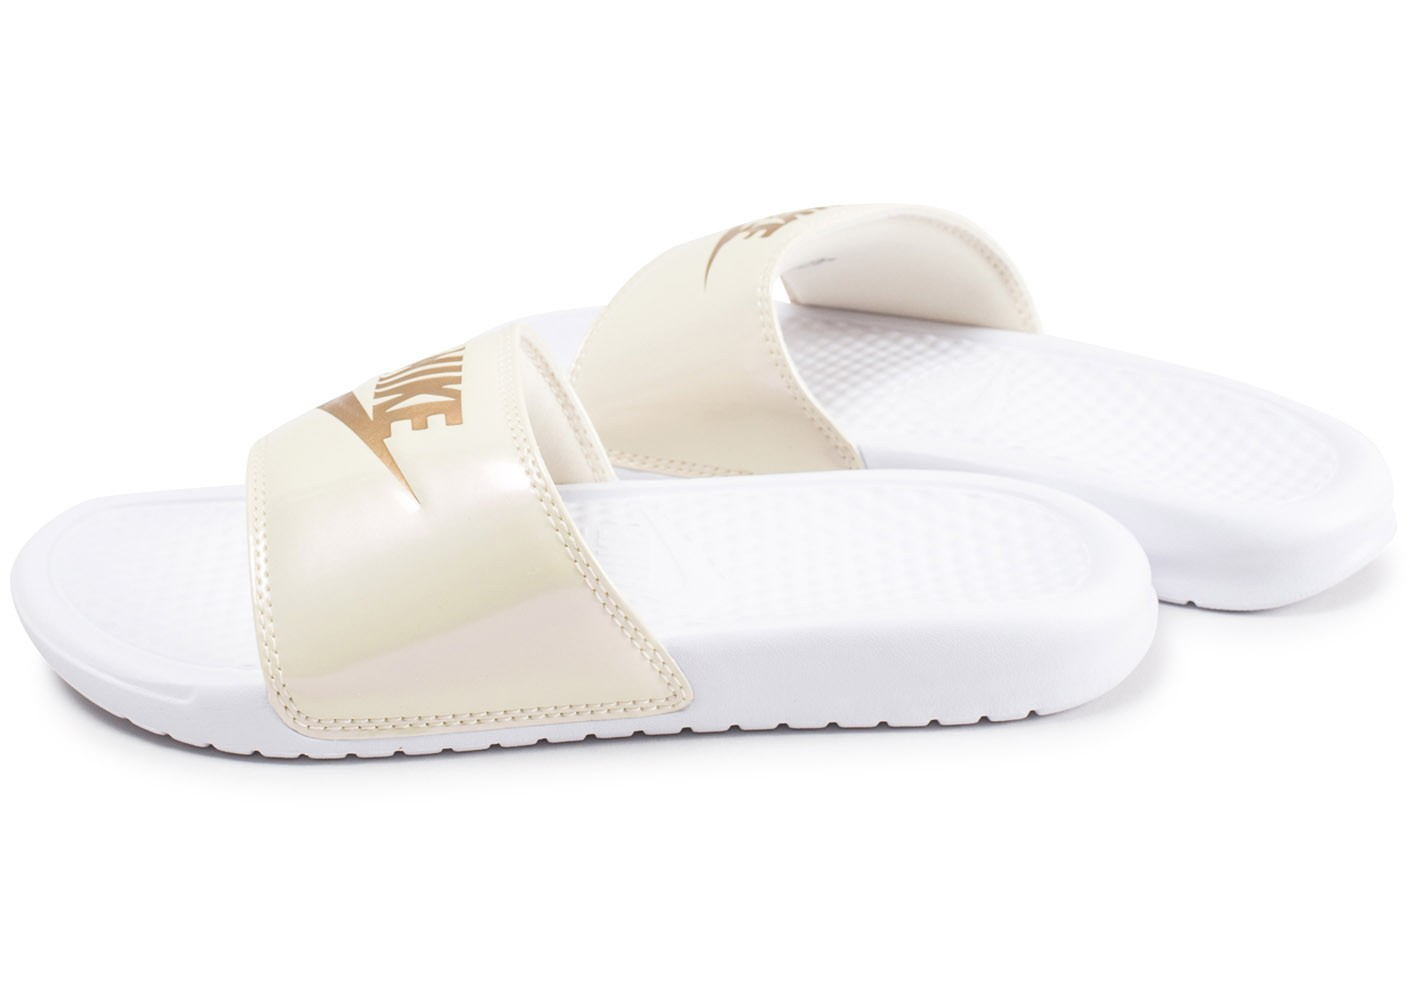 Nike Sandales Benassi blanches et or femme - Chaussures ...